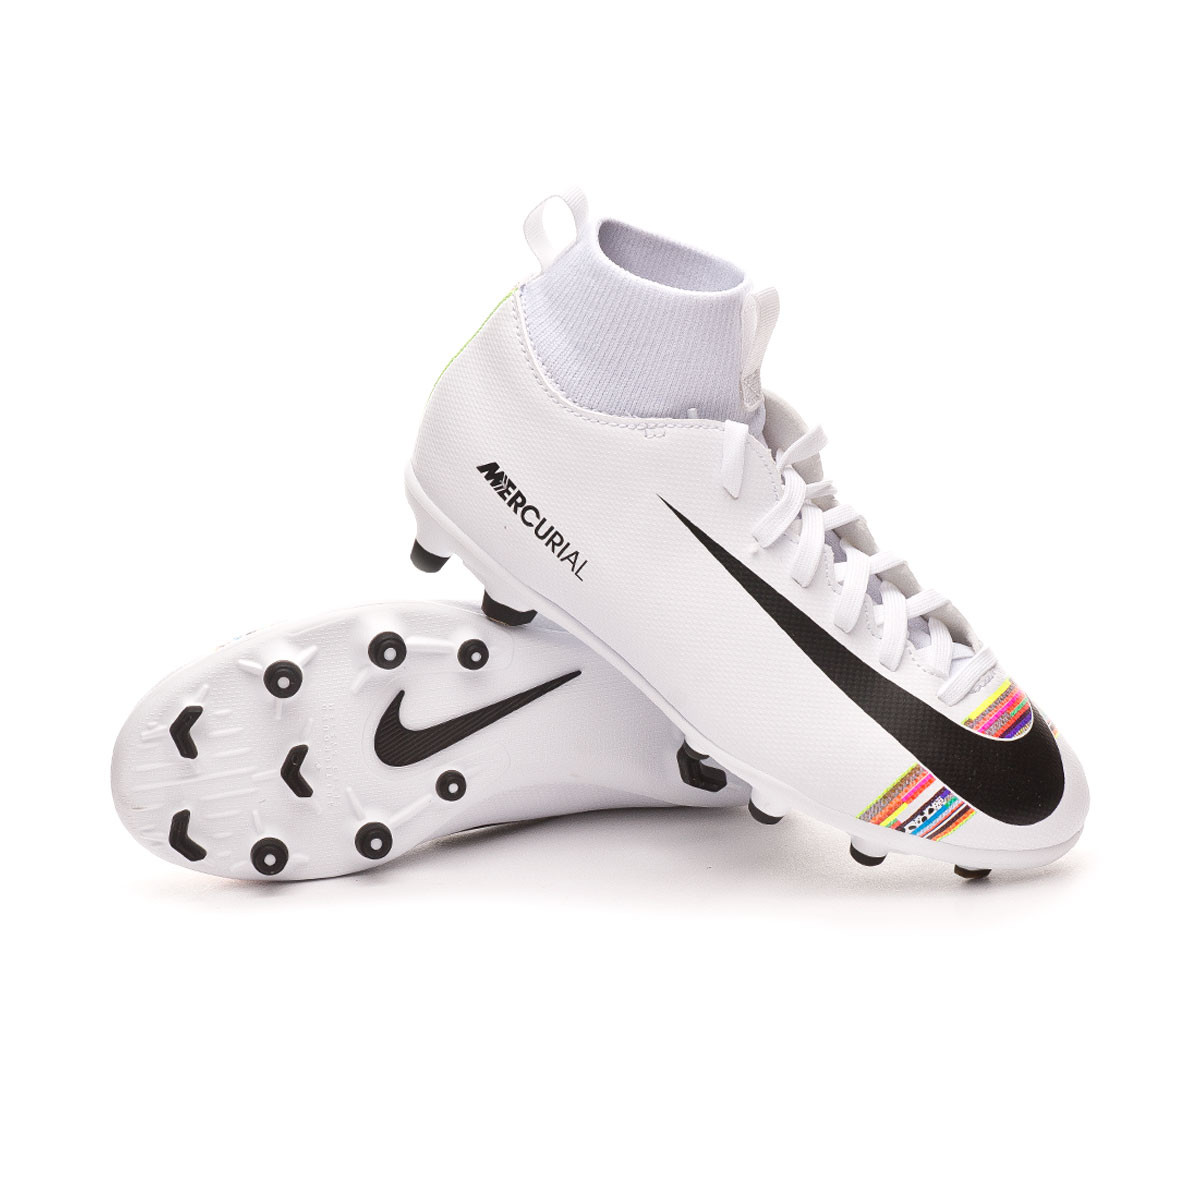 65017aacf Football Boots Nike Mercurial Superfly VI Club LVL UP MG Niño White ...